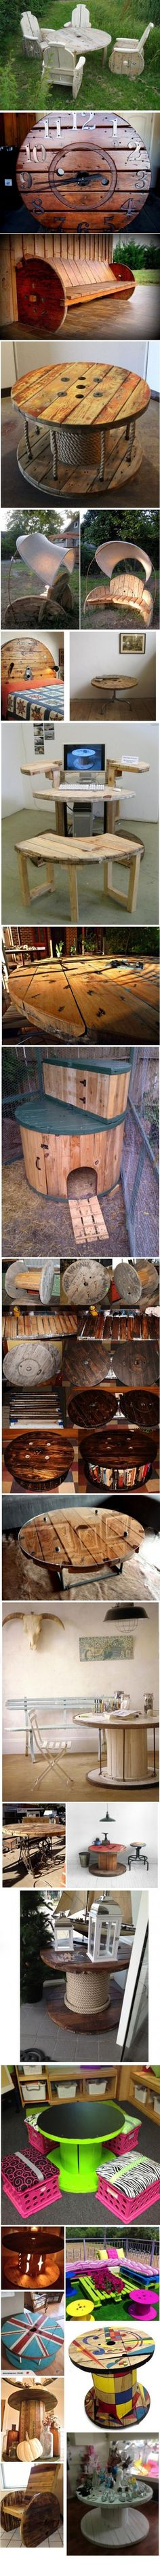 Repurposed Wire Spool Ideas Ideas for repurposing a wire cable spool. Pallet Crafts, Pallet Projects, Wood Crafts, Woodworking Projects, Wire Spool, Wooden Spools, Pallet Furniture, Furniture Projects, Recycled Furniture